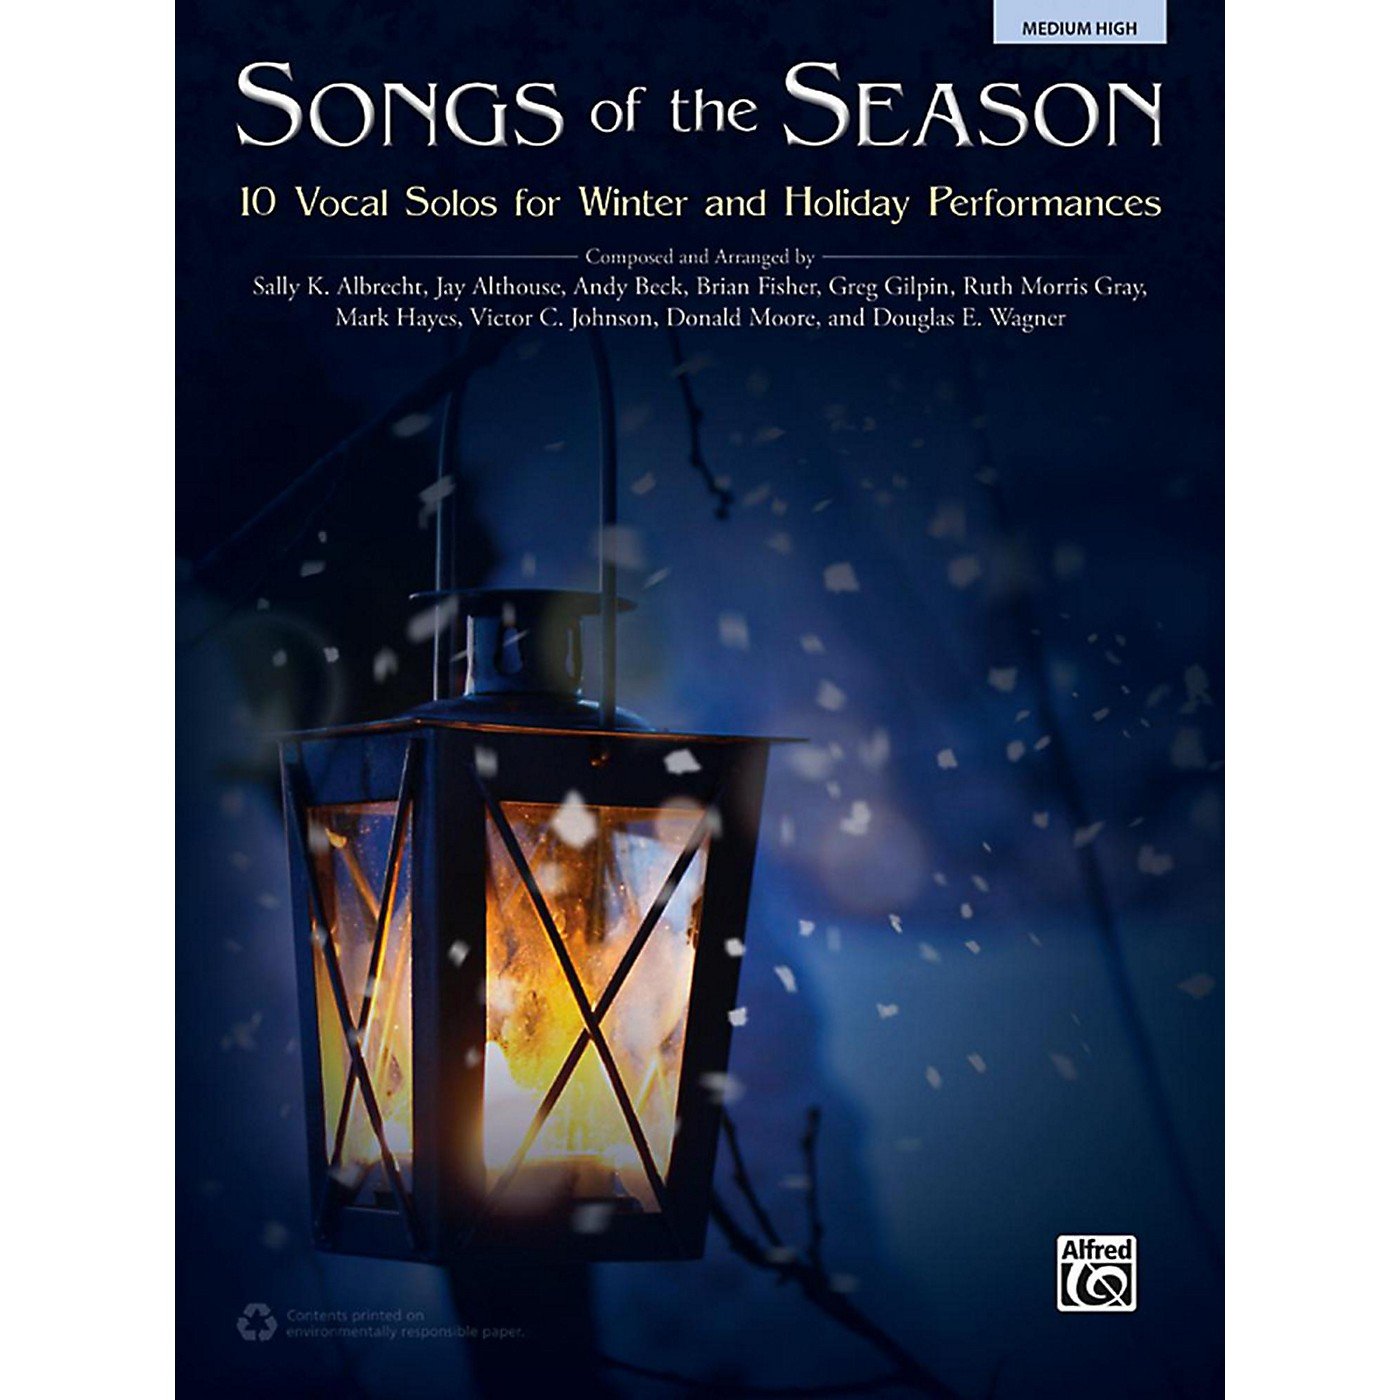 Alfred Songs of the Season Medium High Acc. CD thumbnail